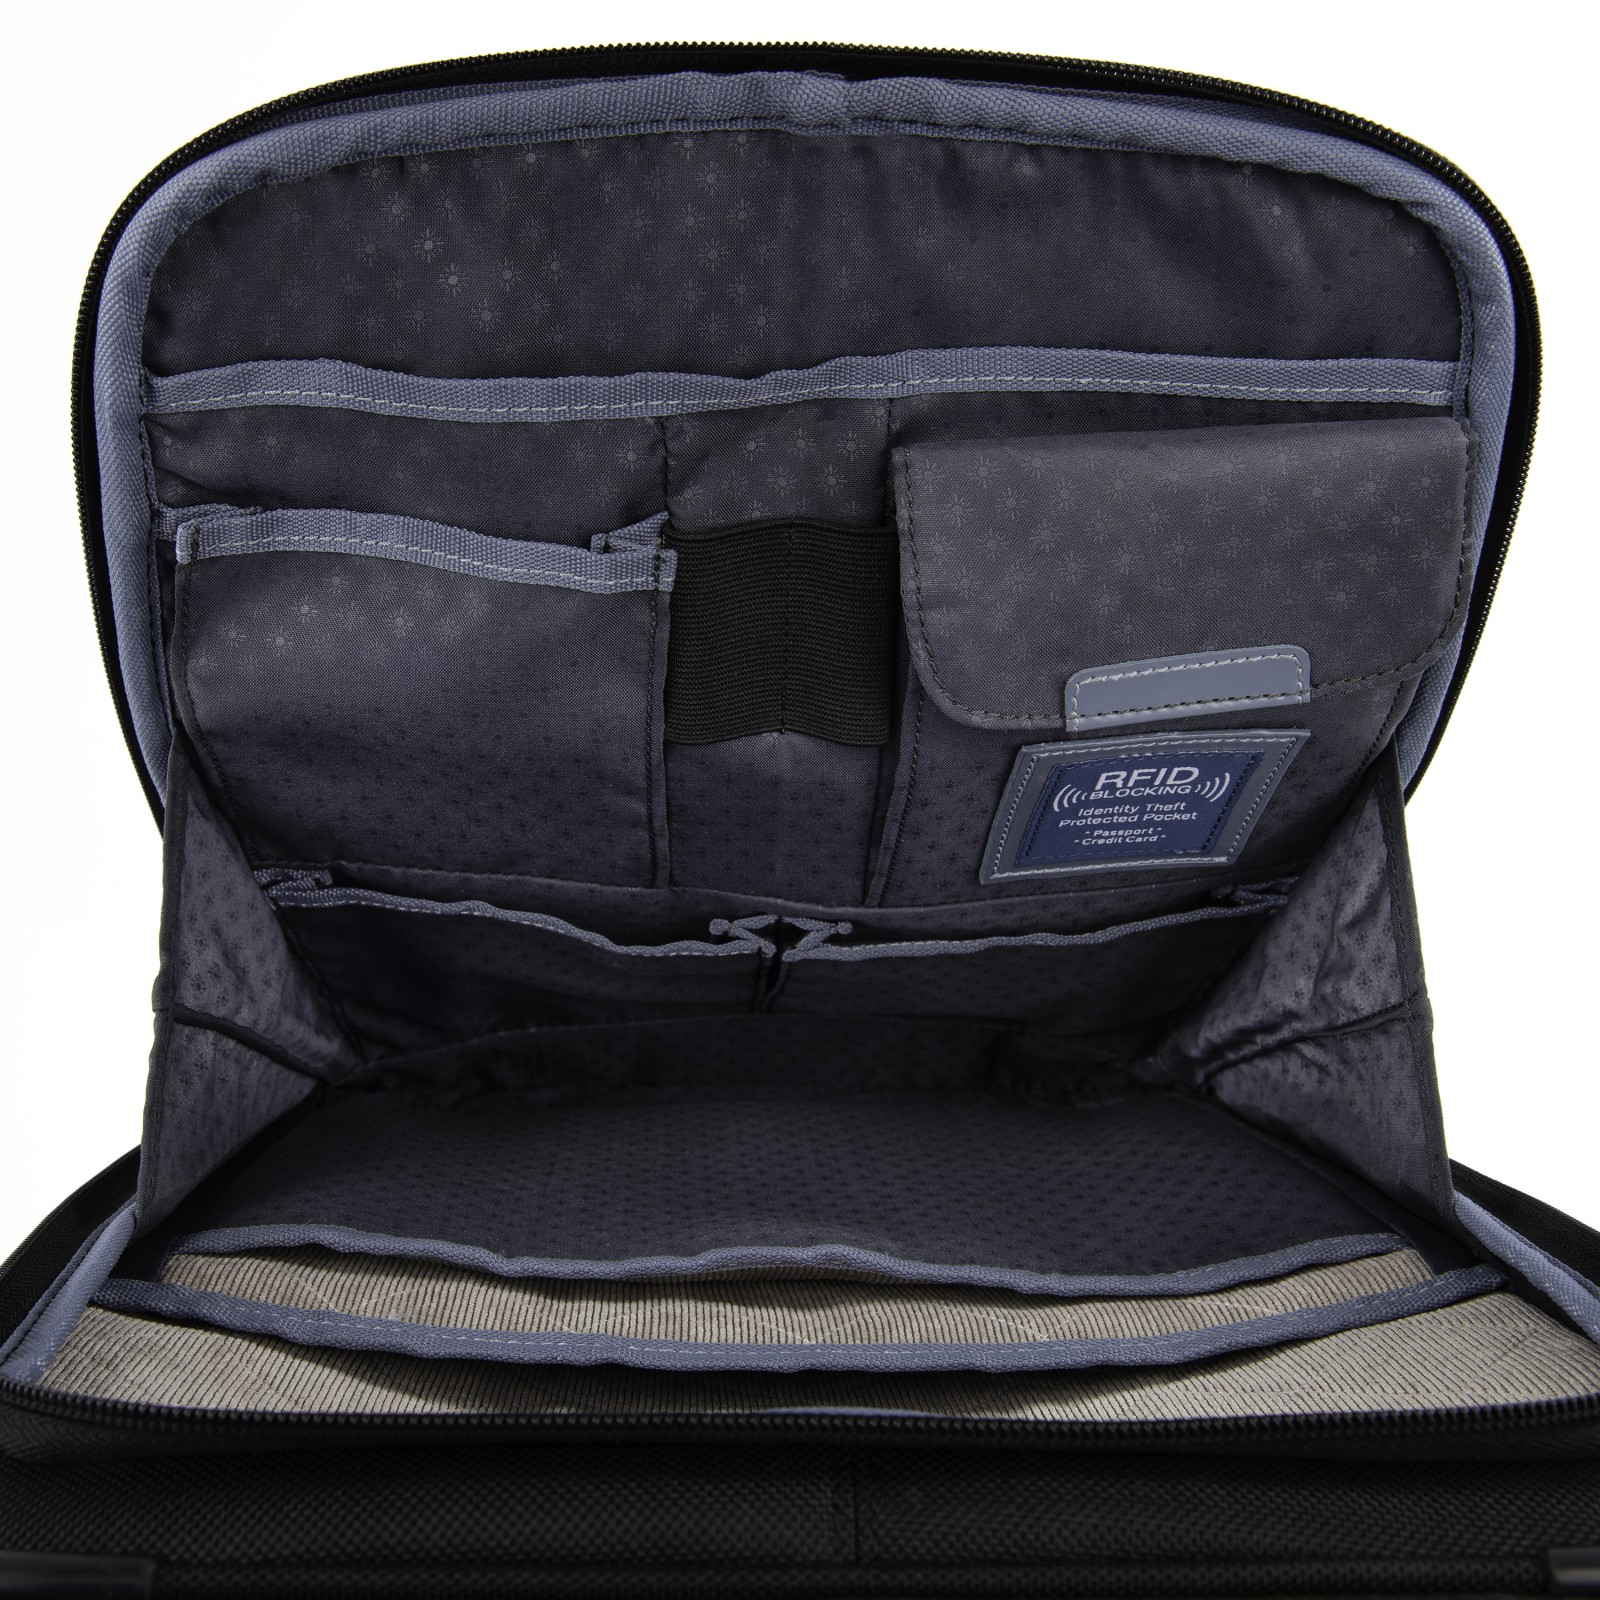 Travelpro Platinum Elite 20 Expandable Business Plus Carry On Spinner 409188001 Luggage